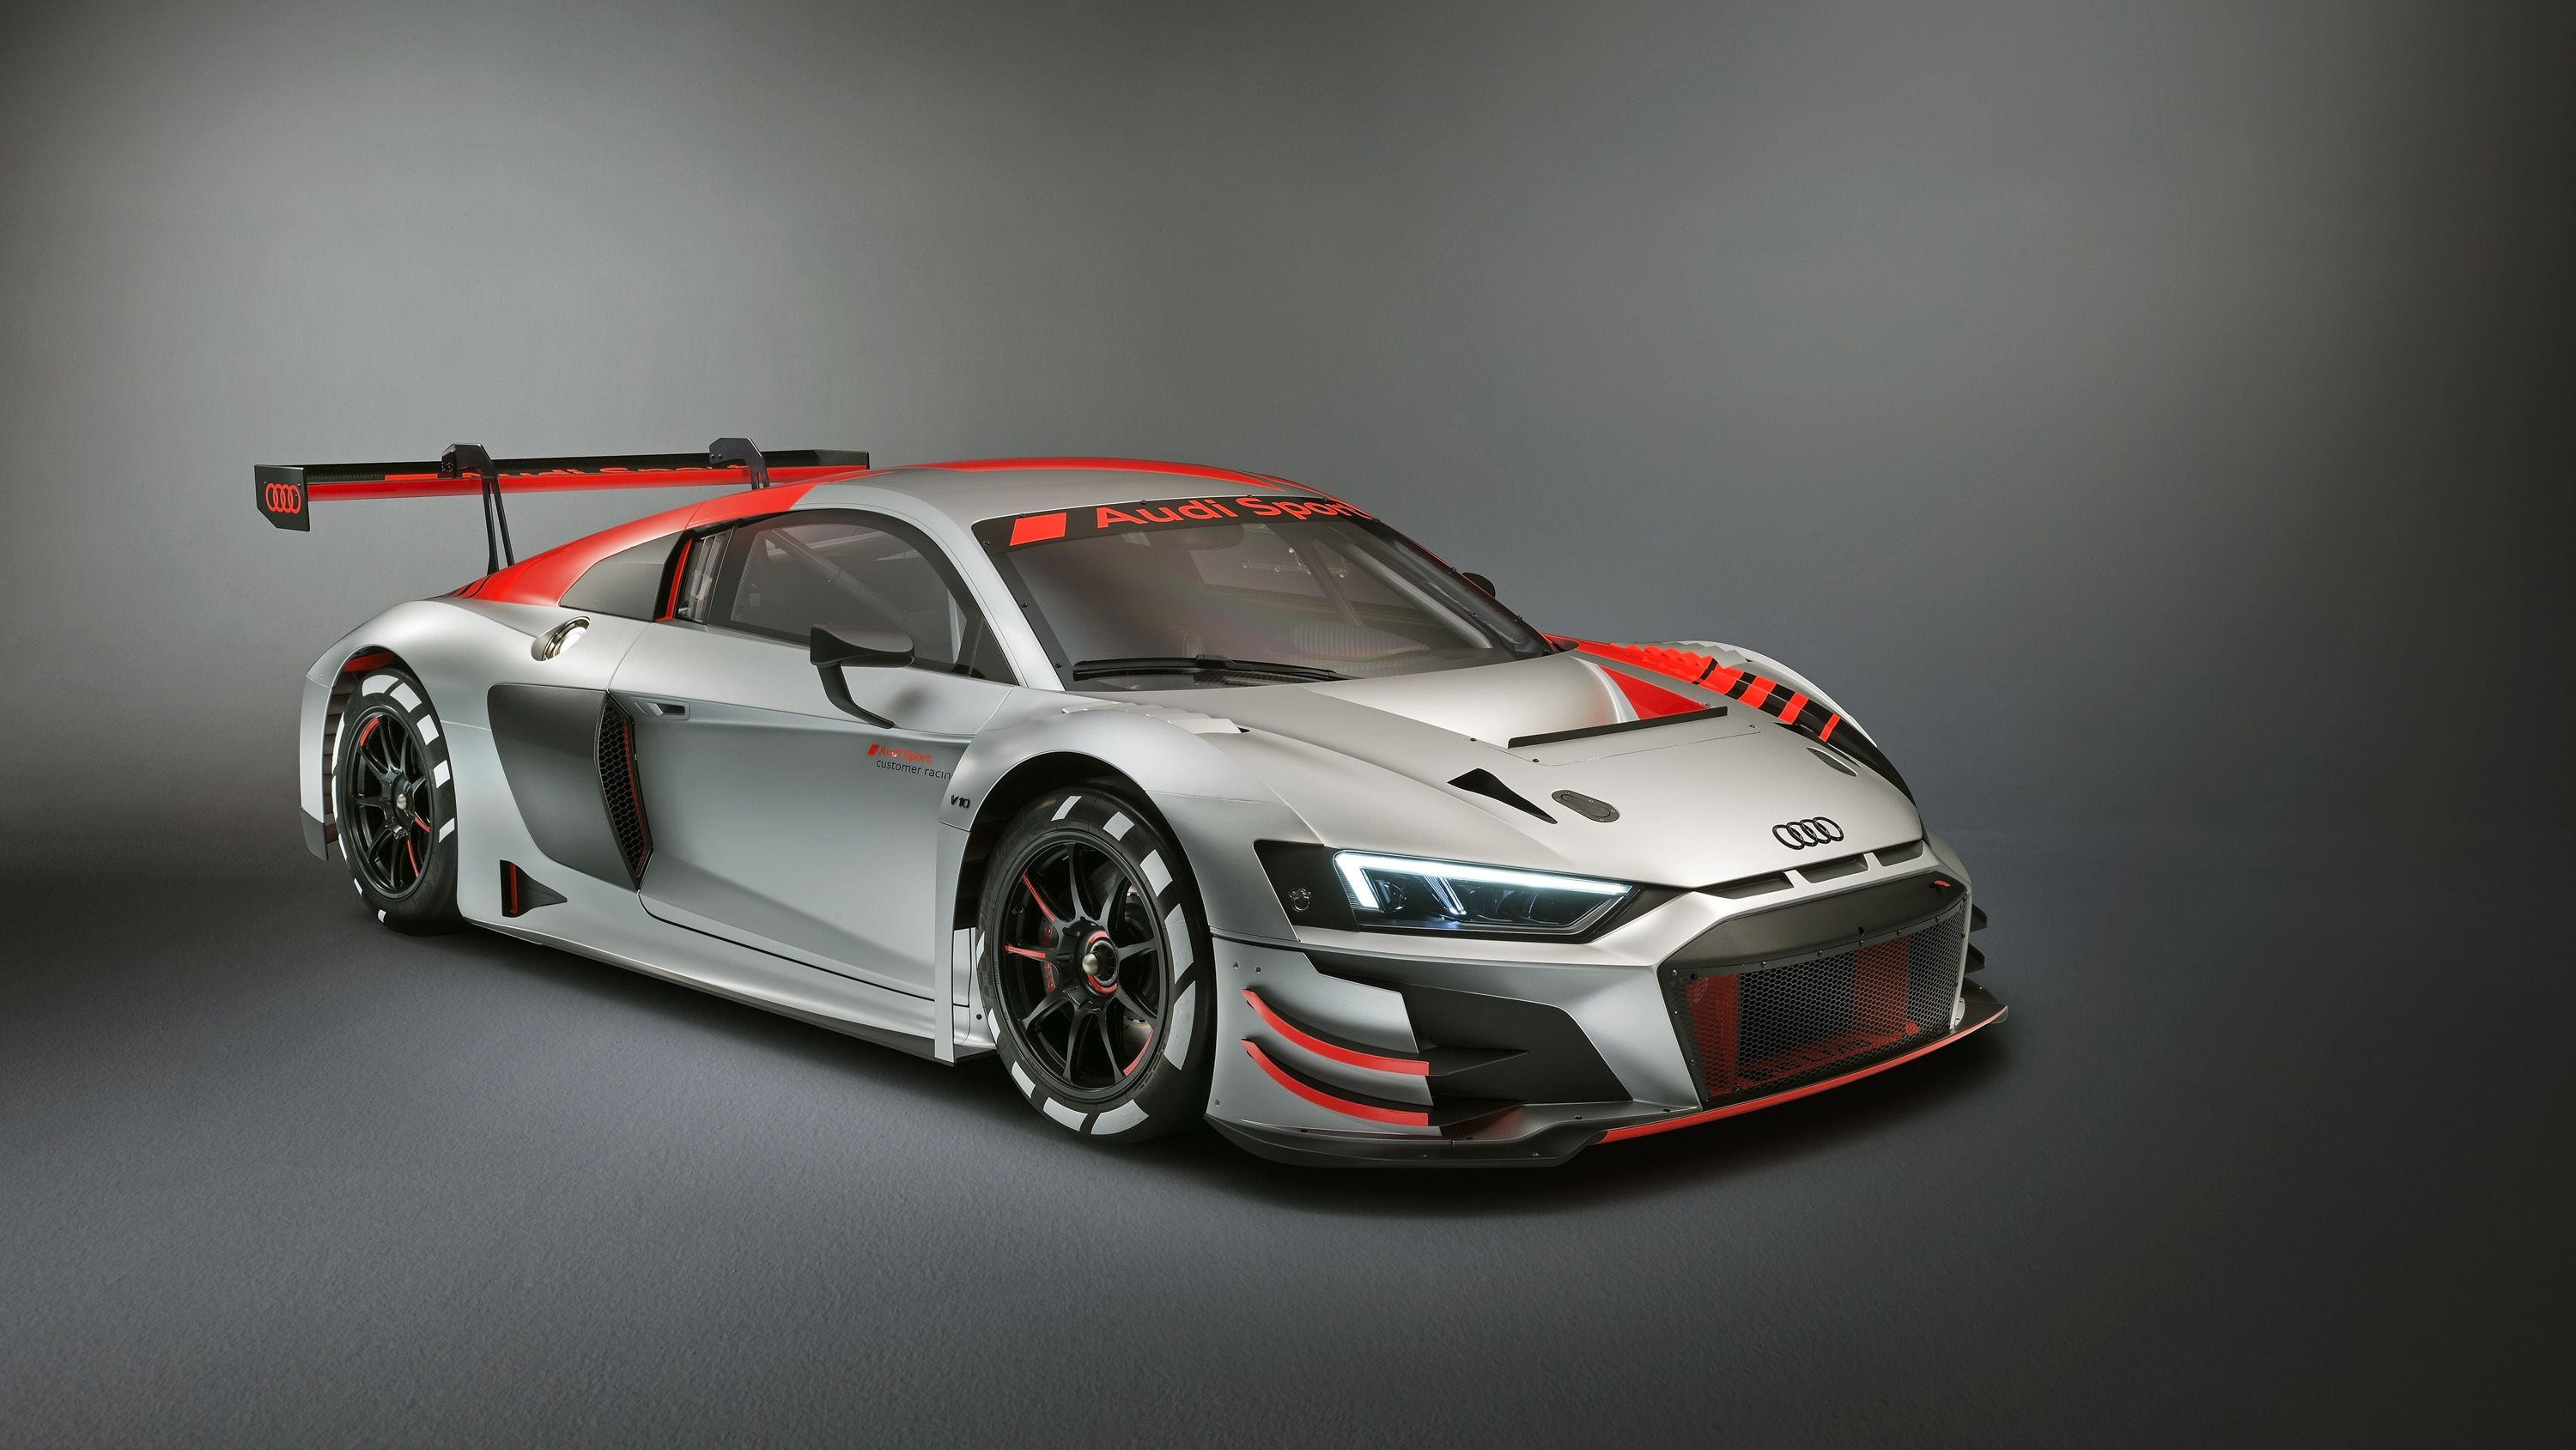 This New Audi R8 Lms Gt3 Serves As A Preview For The 2020 Audi R8